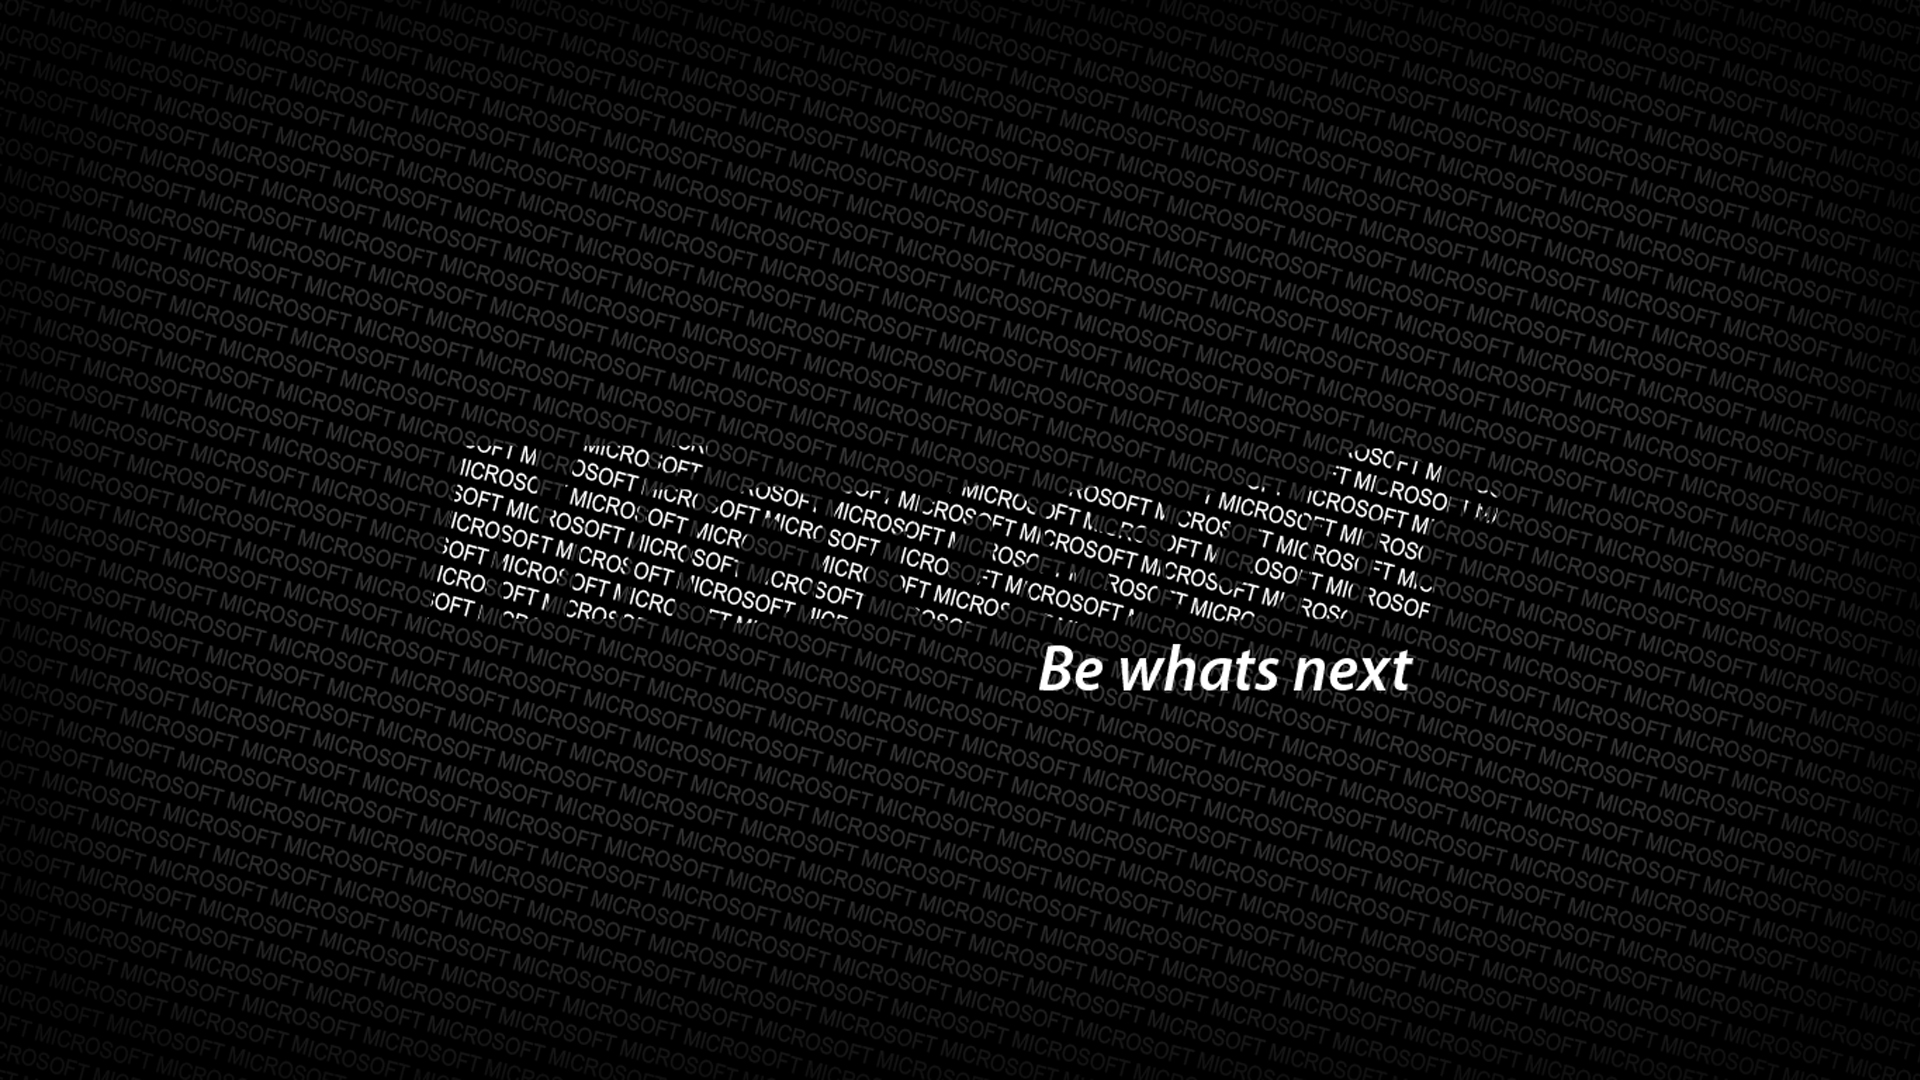 microsoft computer wallpapers 50 wallpapers